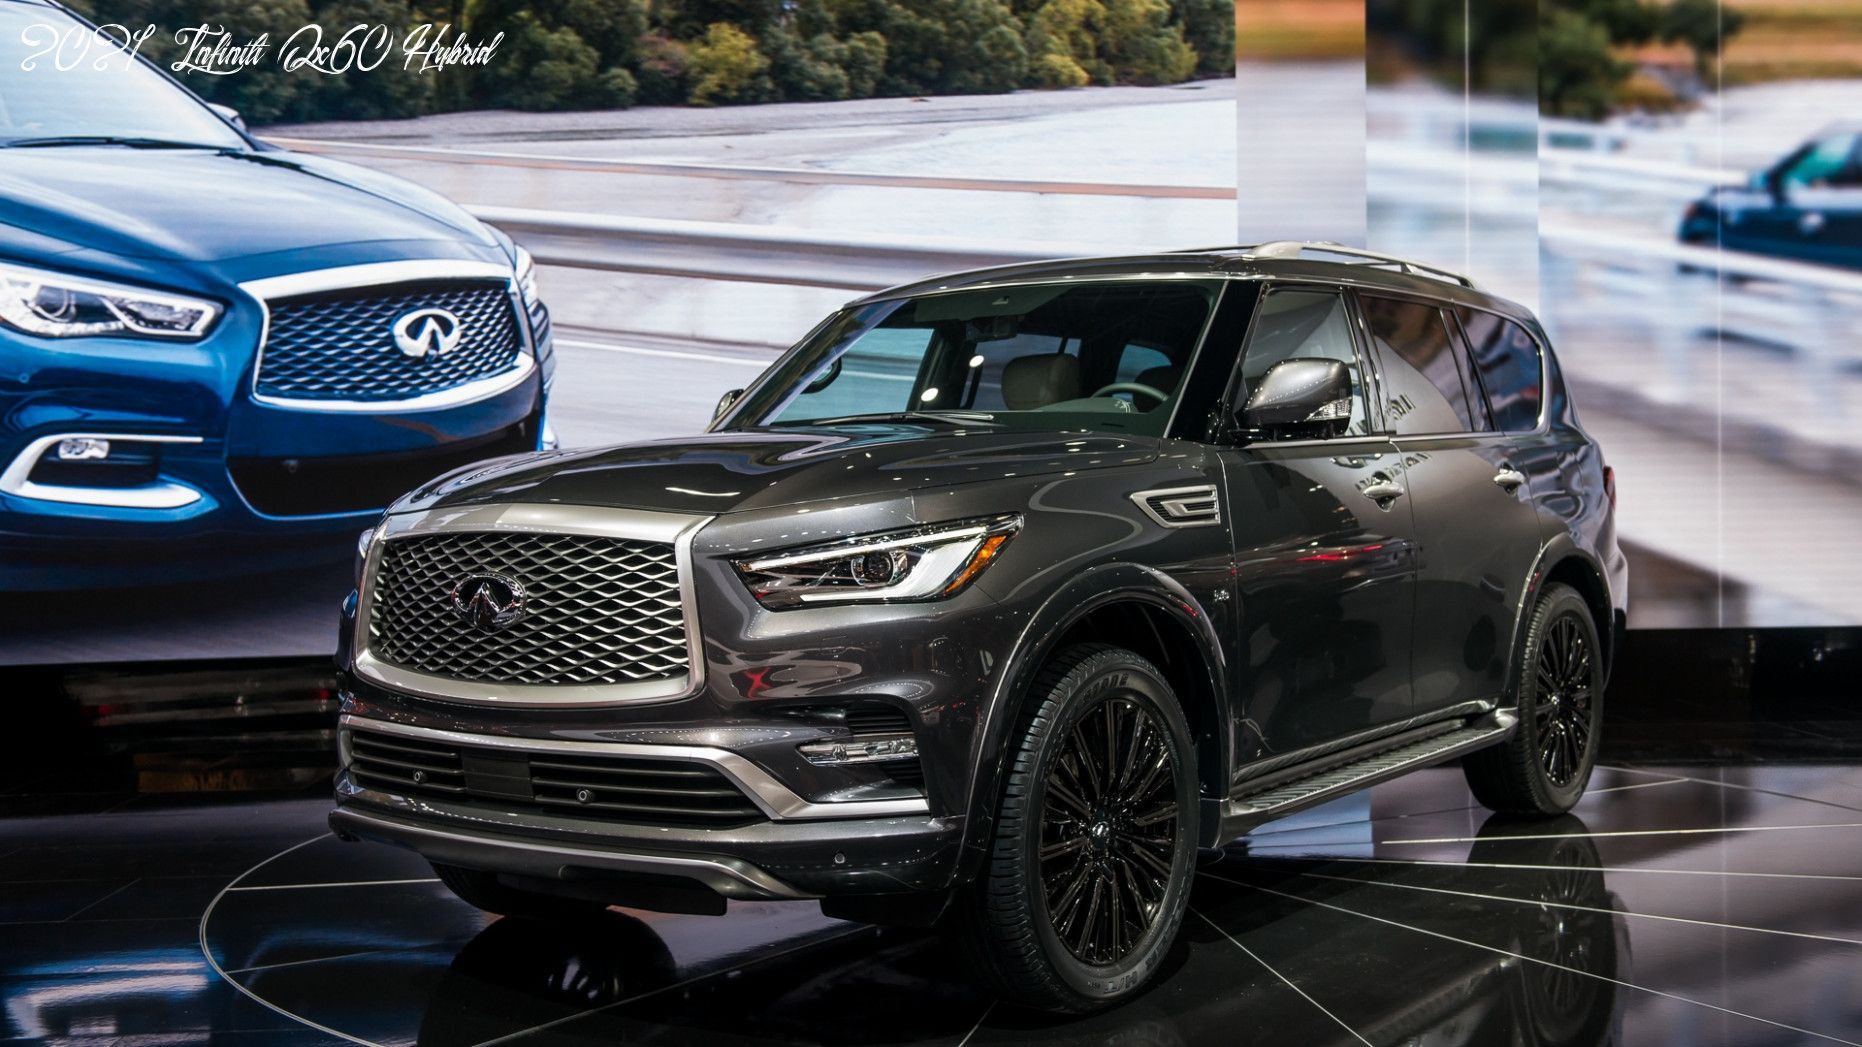 2021 Infiniti Qx60 Hybrid Release Date And Concept In 2020 New Suv Suv Infiniti